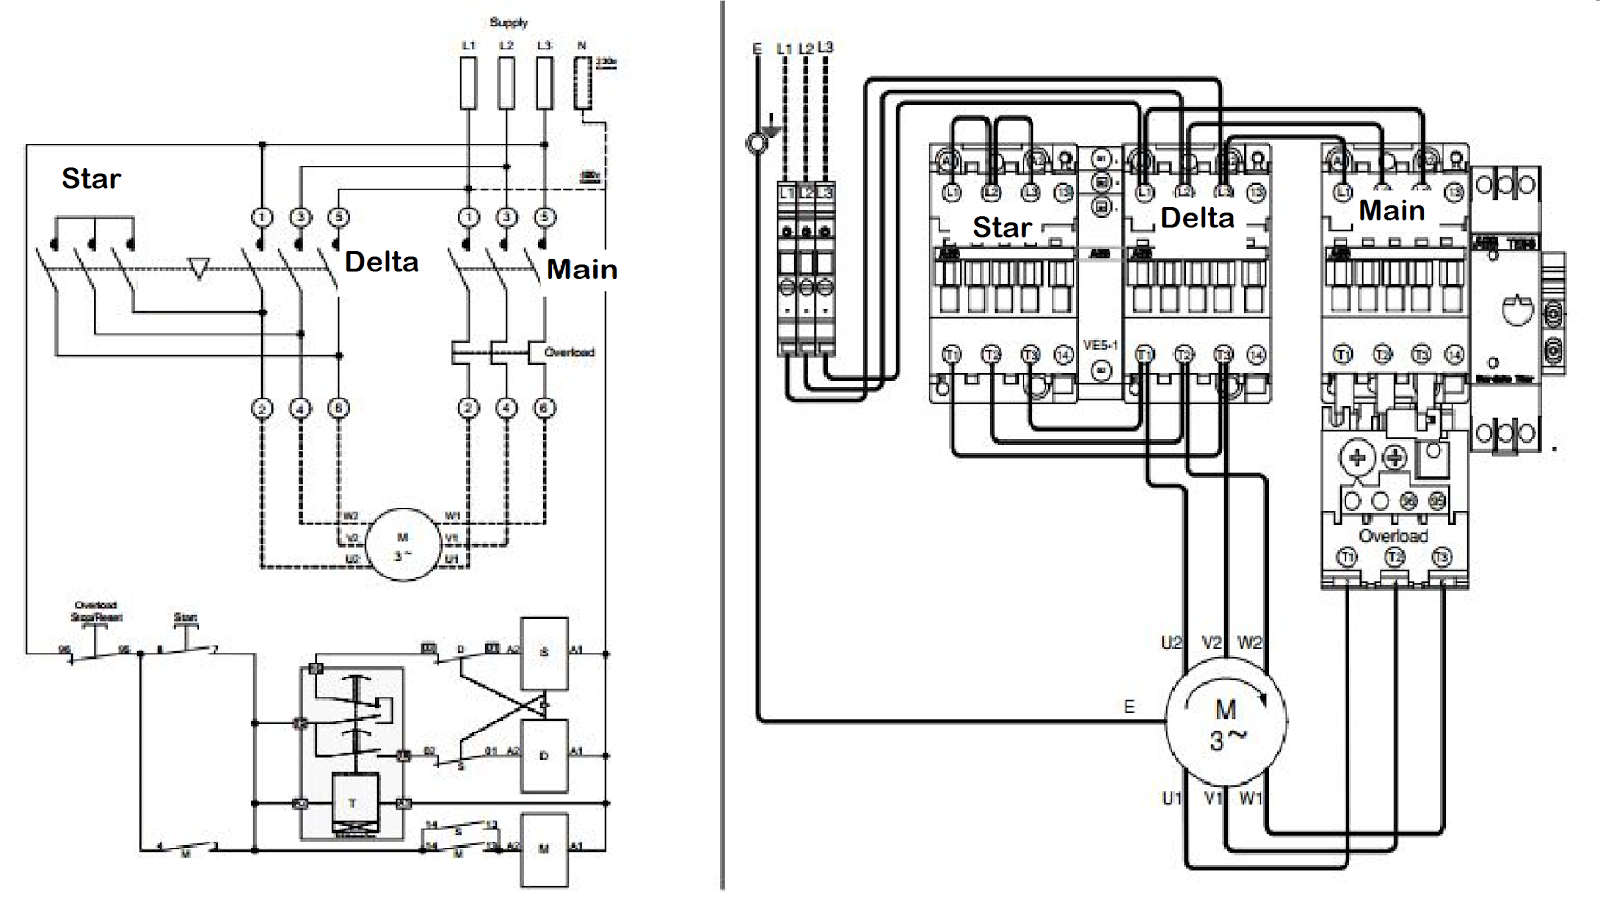 wiring diagram of star delta motor starter